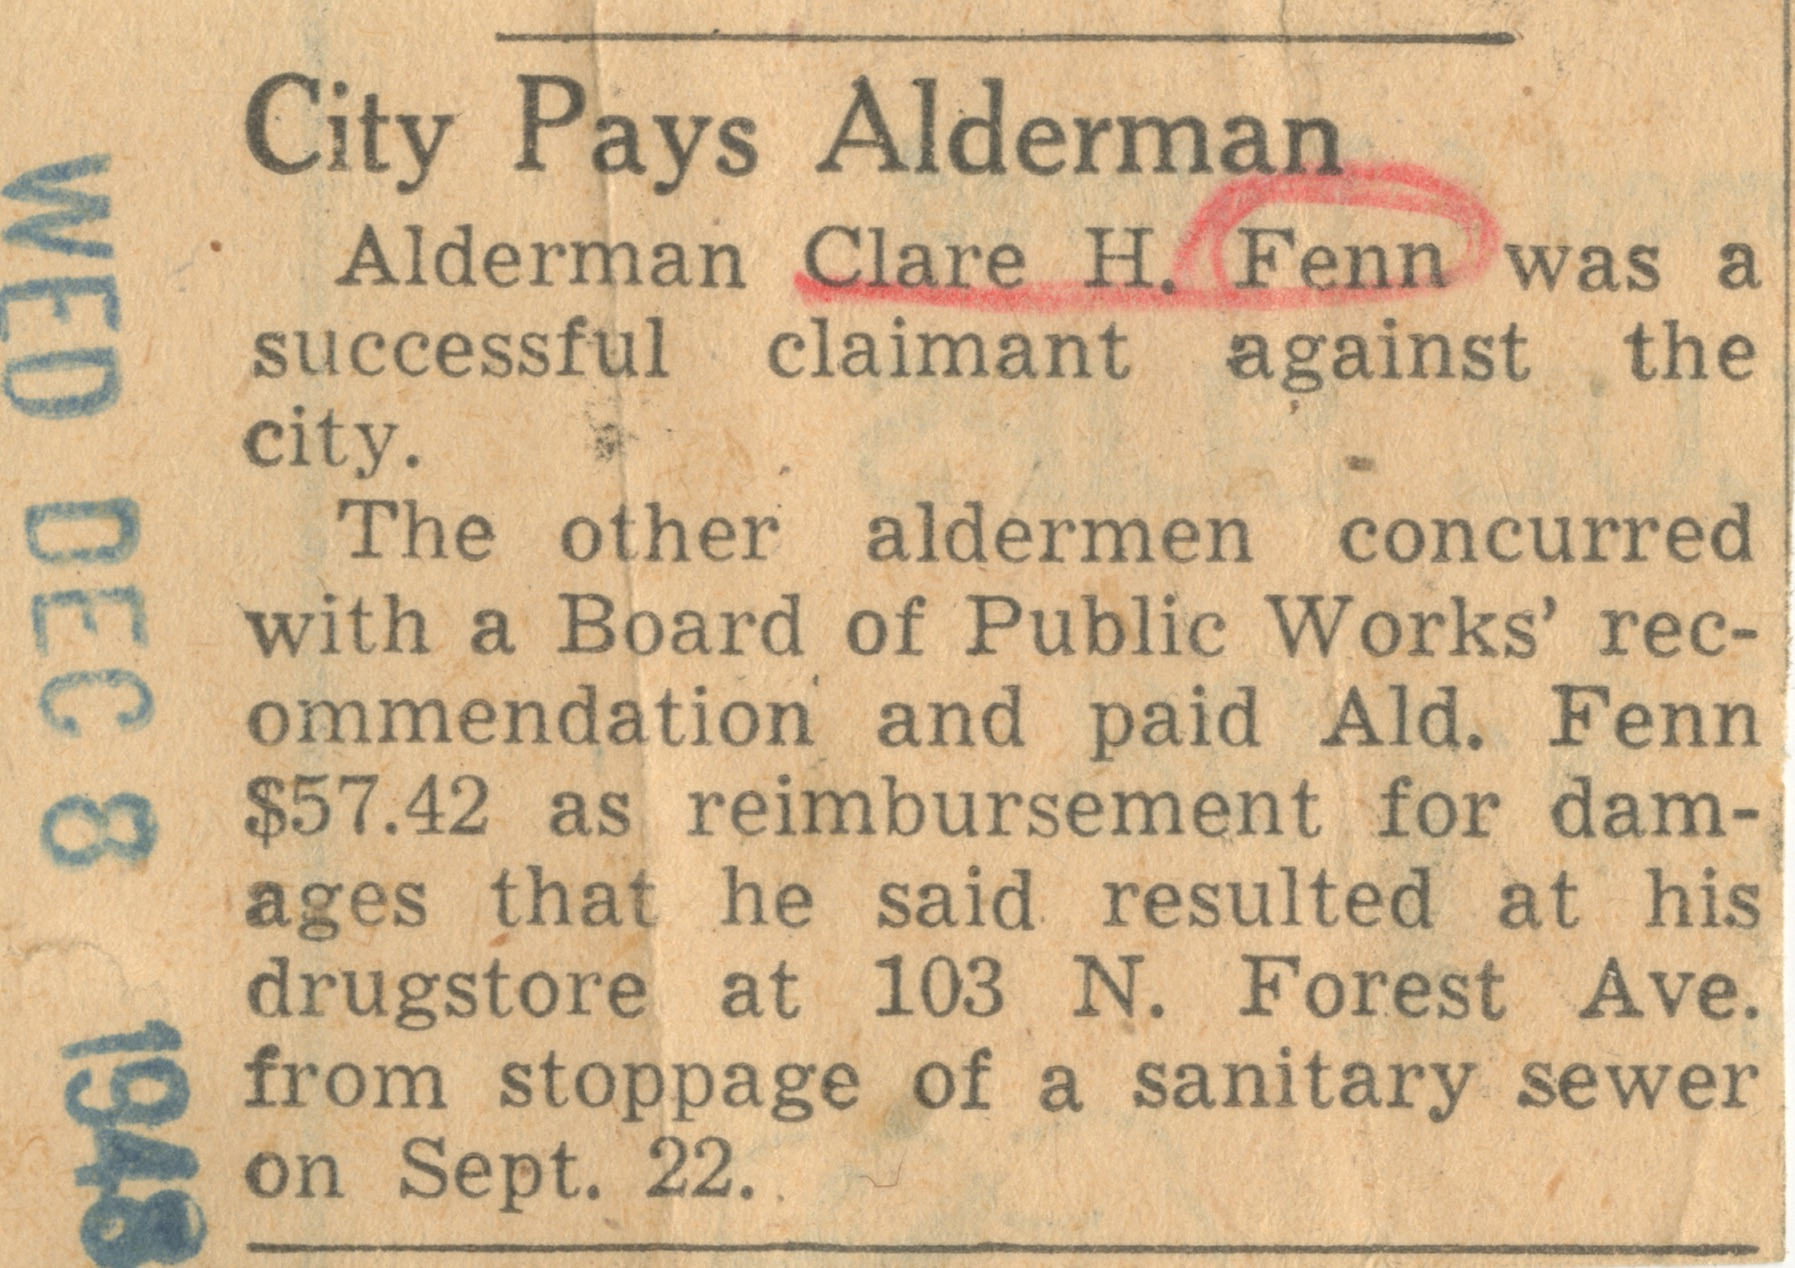 City Pays Alderman image